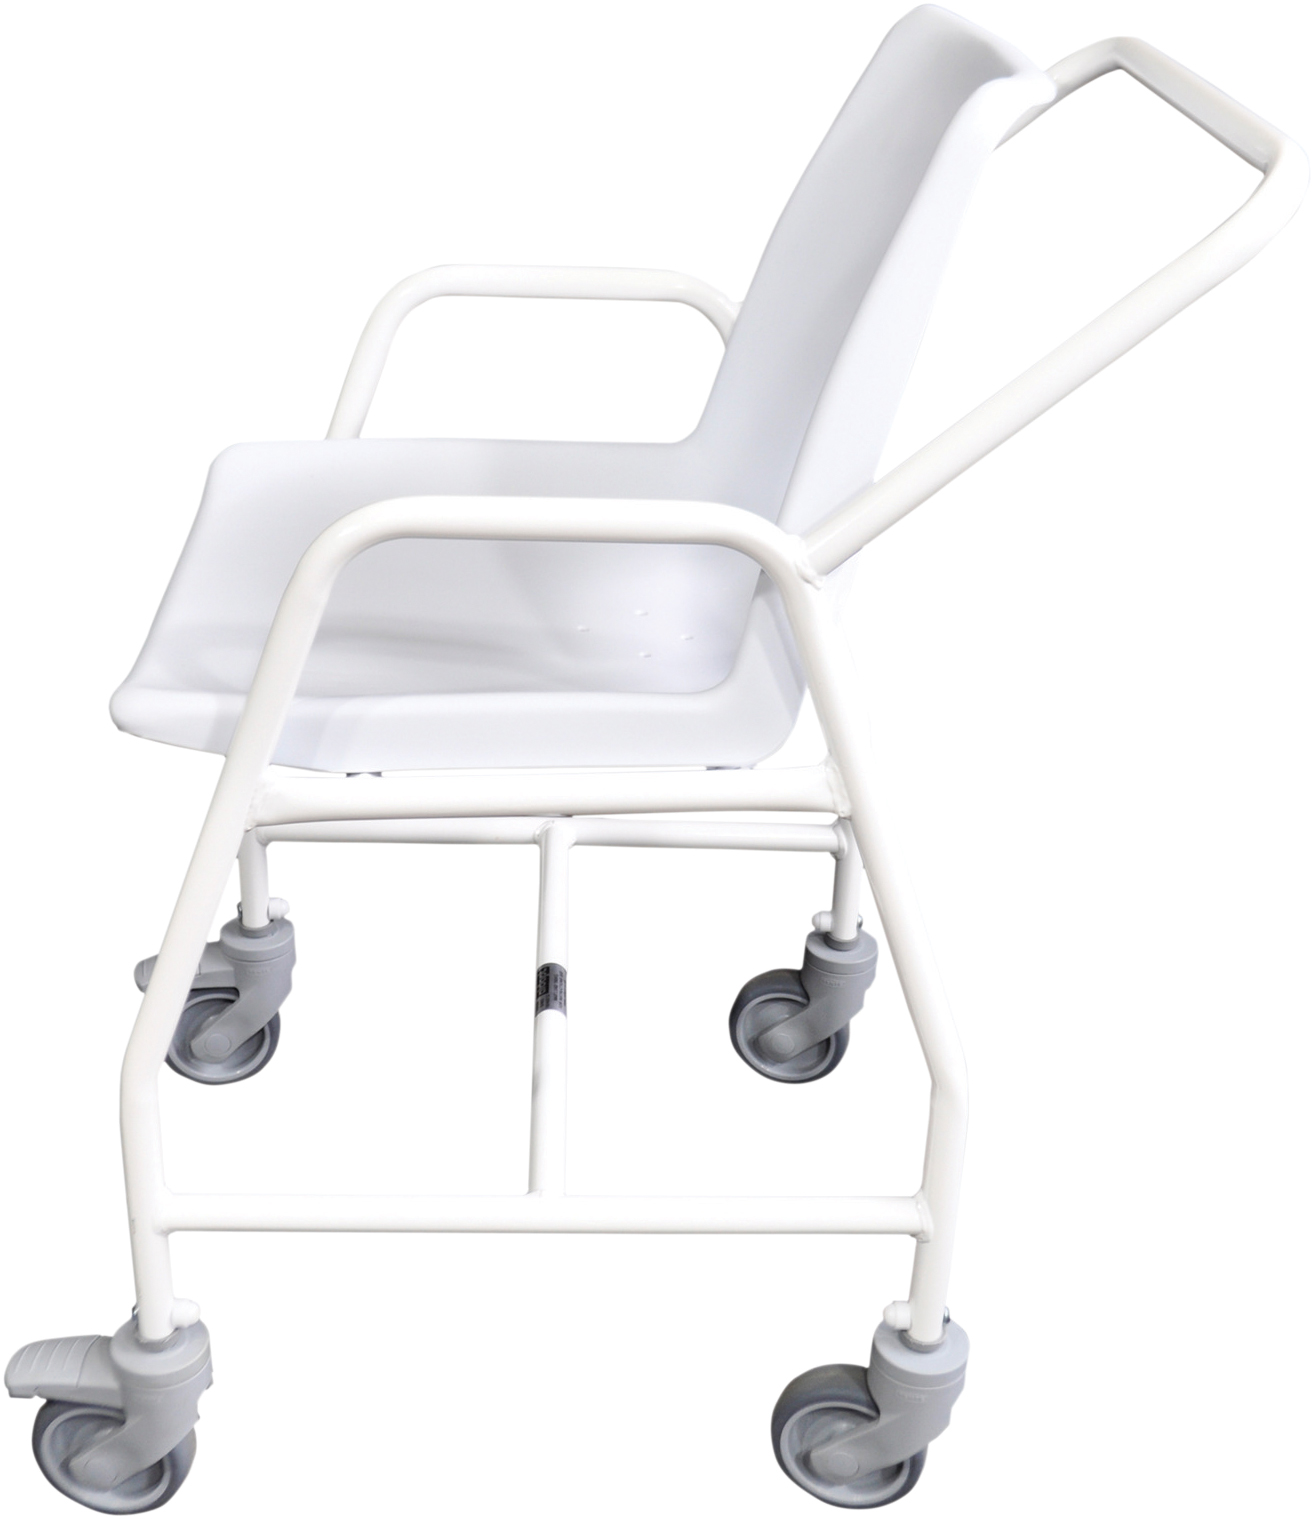 chair bench stool with medical shower adjustable tub and seat back movable bath wheels transfer itm arms